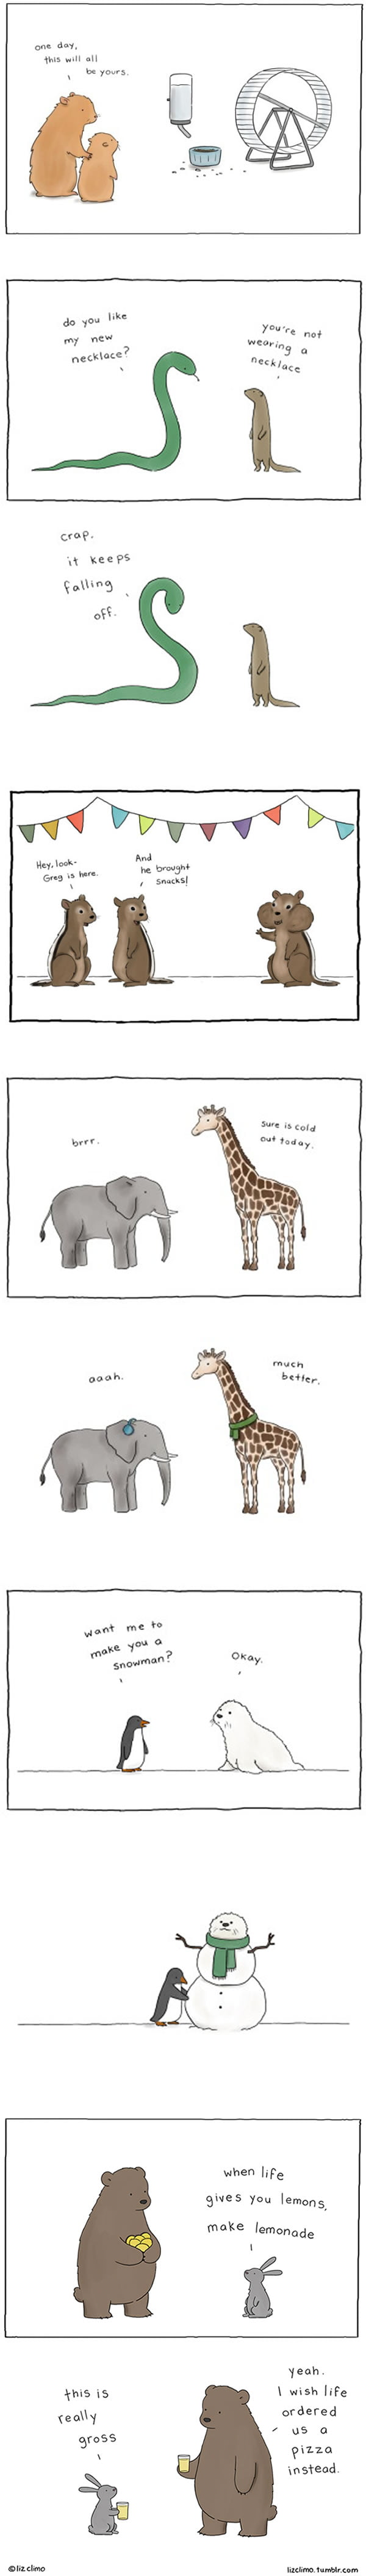 A Series Of Cute Animal Comics That Will Make You Smile (By Liz Climo)